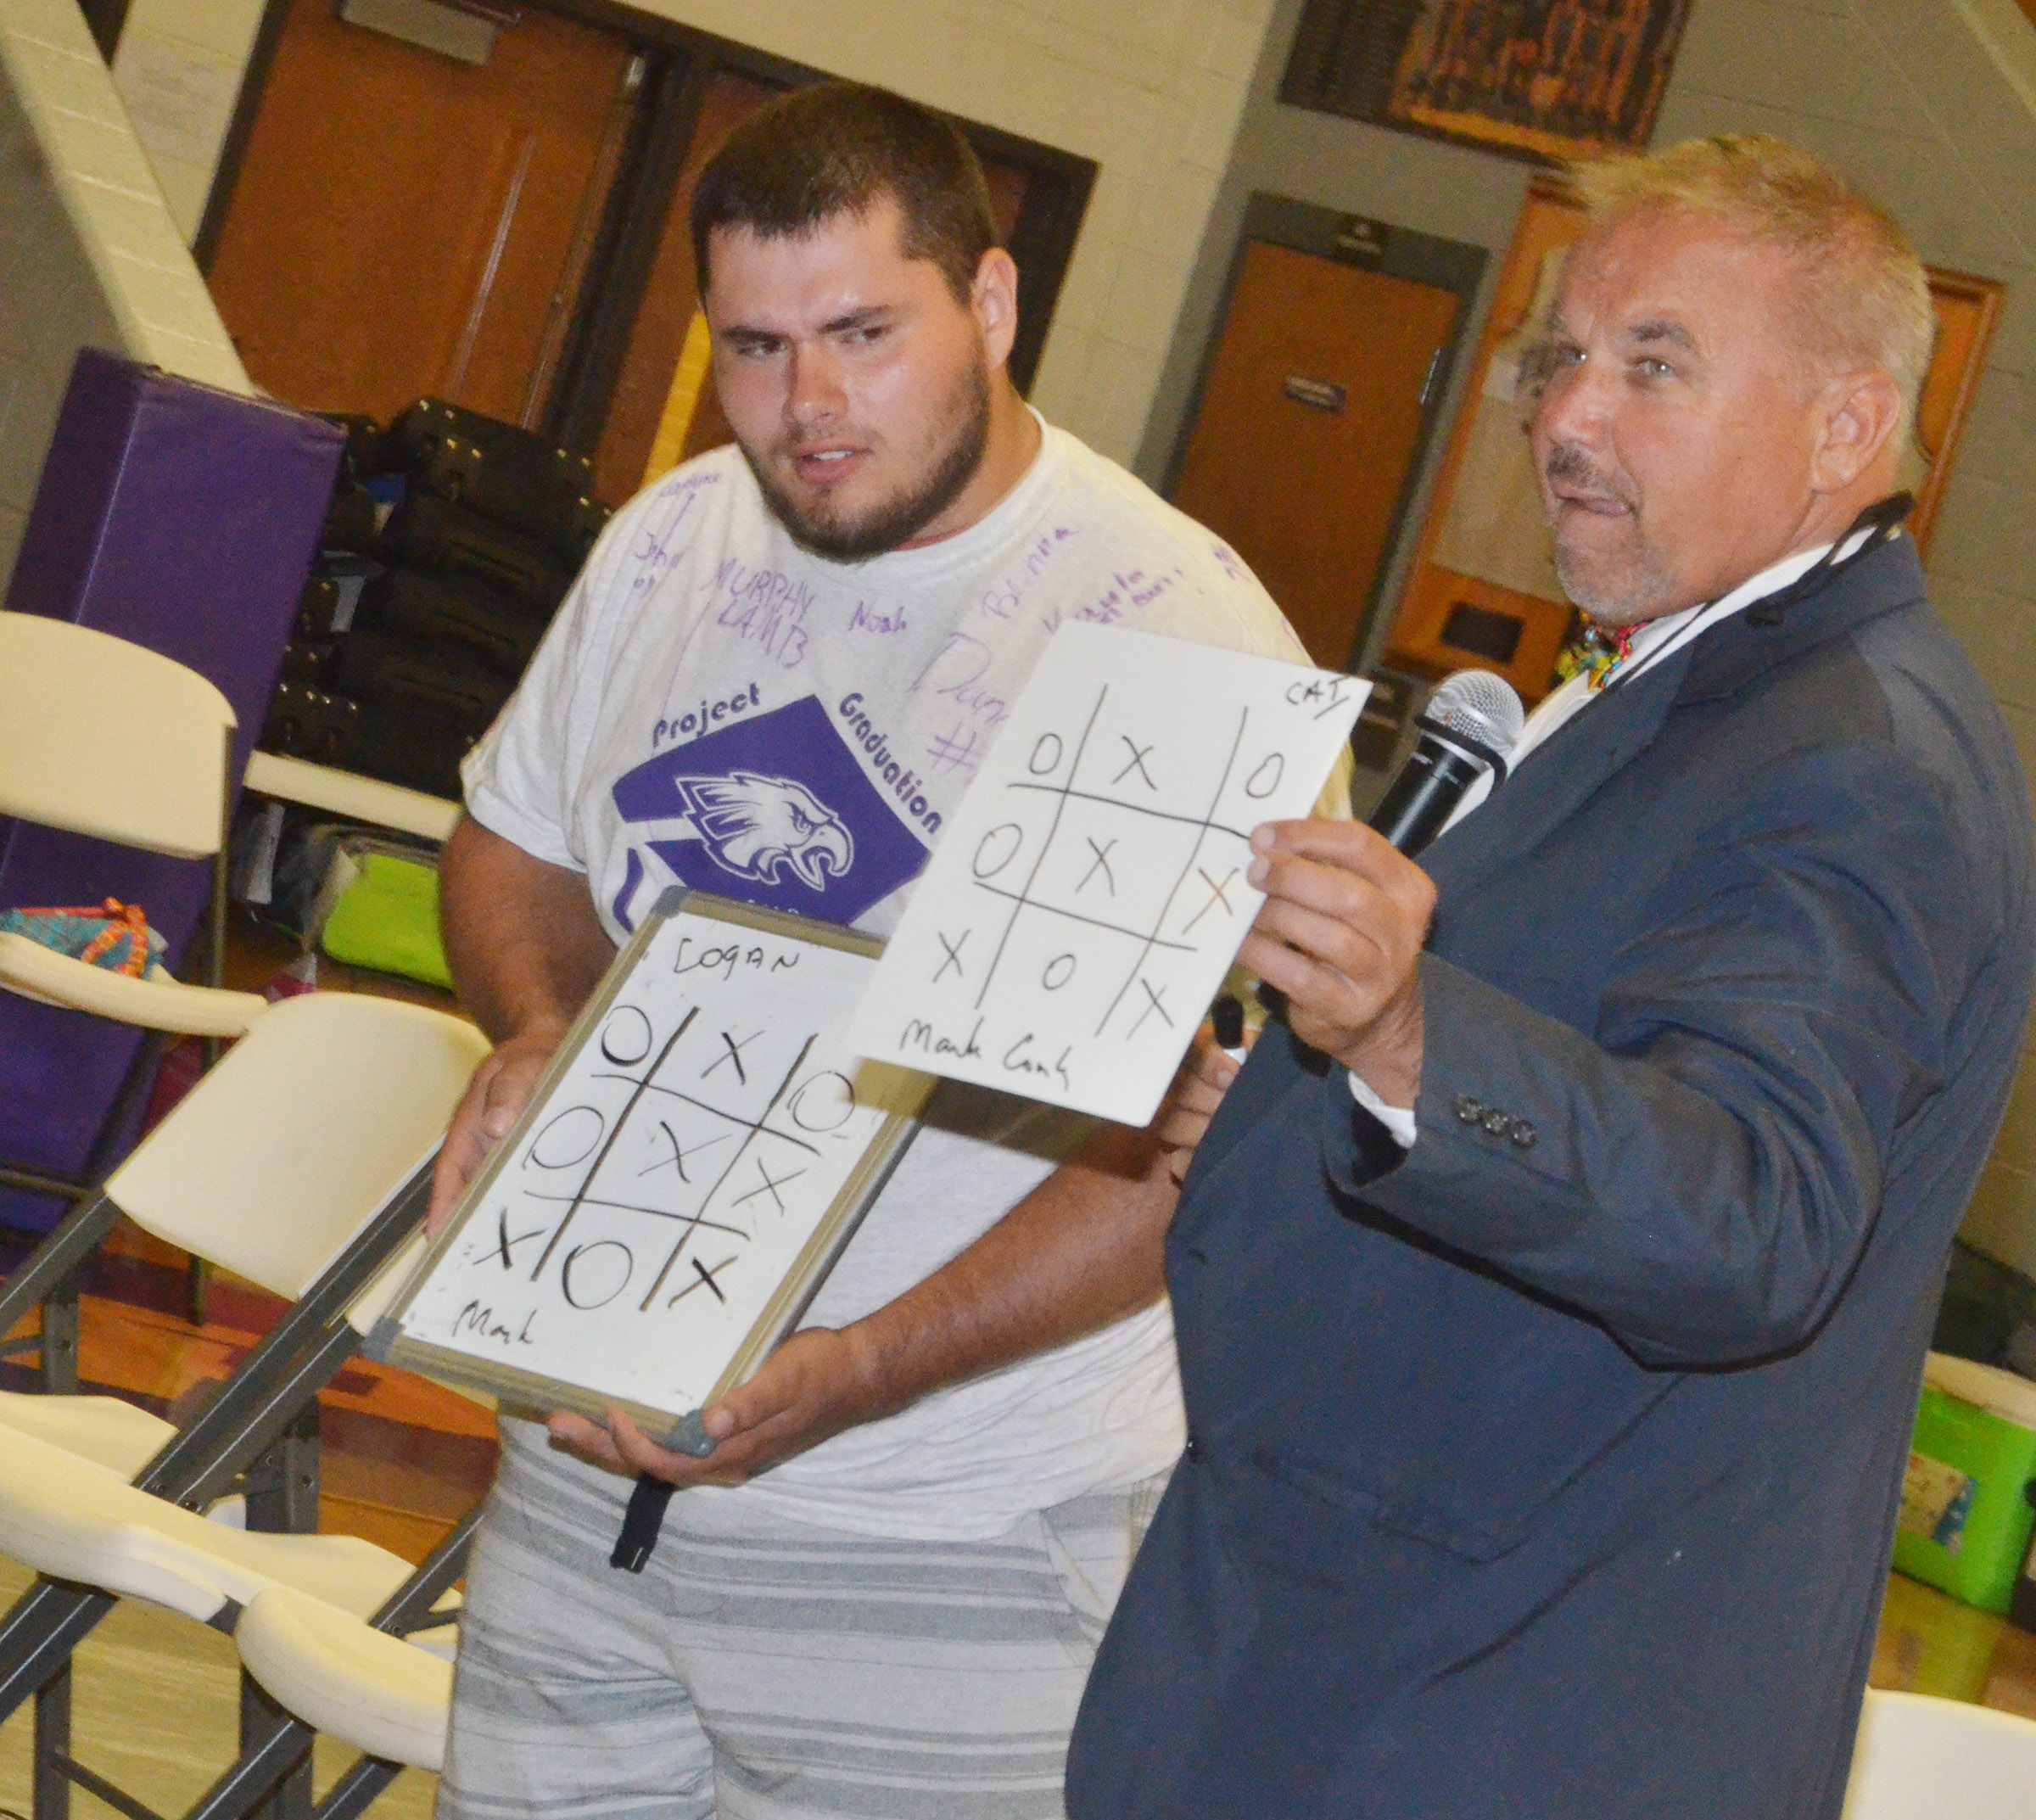 CHS senior Logan Brown isn't sure how Mark Comley wrote their tic-tac-toe game hours before they played.